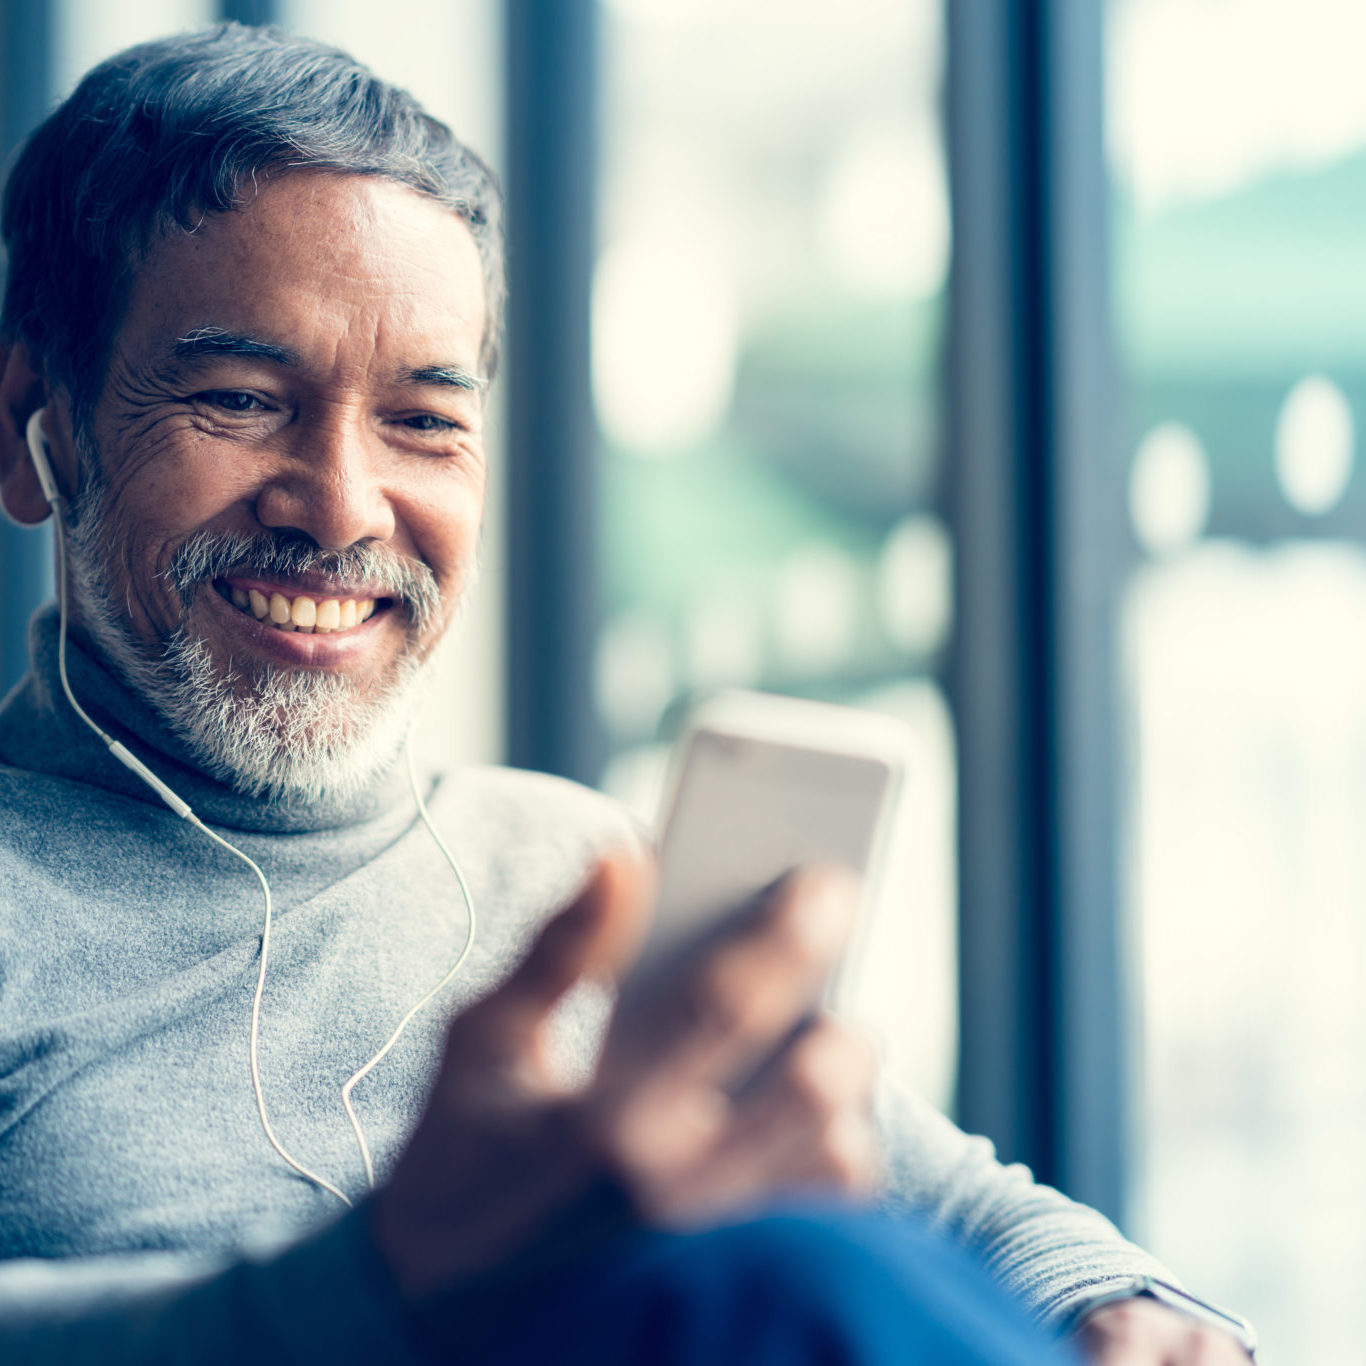 Portrait Smiling Attractive mature man retired with white stylish short beard using smartphone or listening music and sitting at coffee shop cafe. Serving internet via his gadget. Old man using social network internet technology